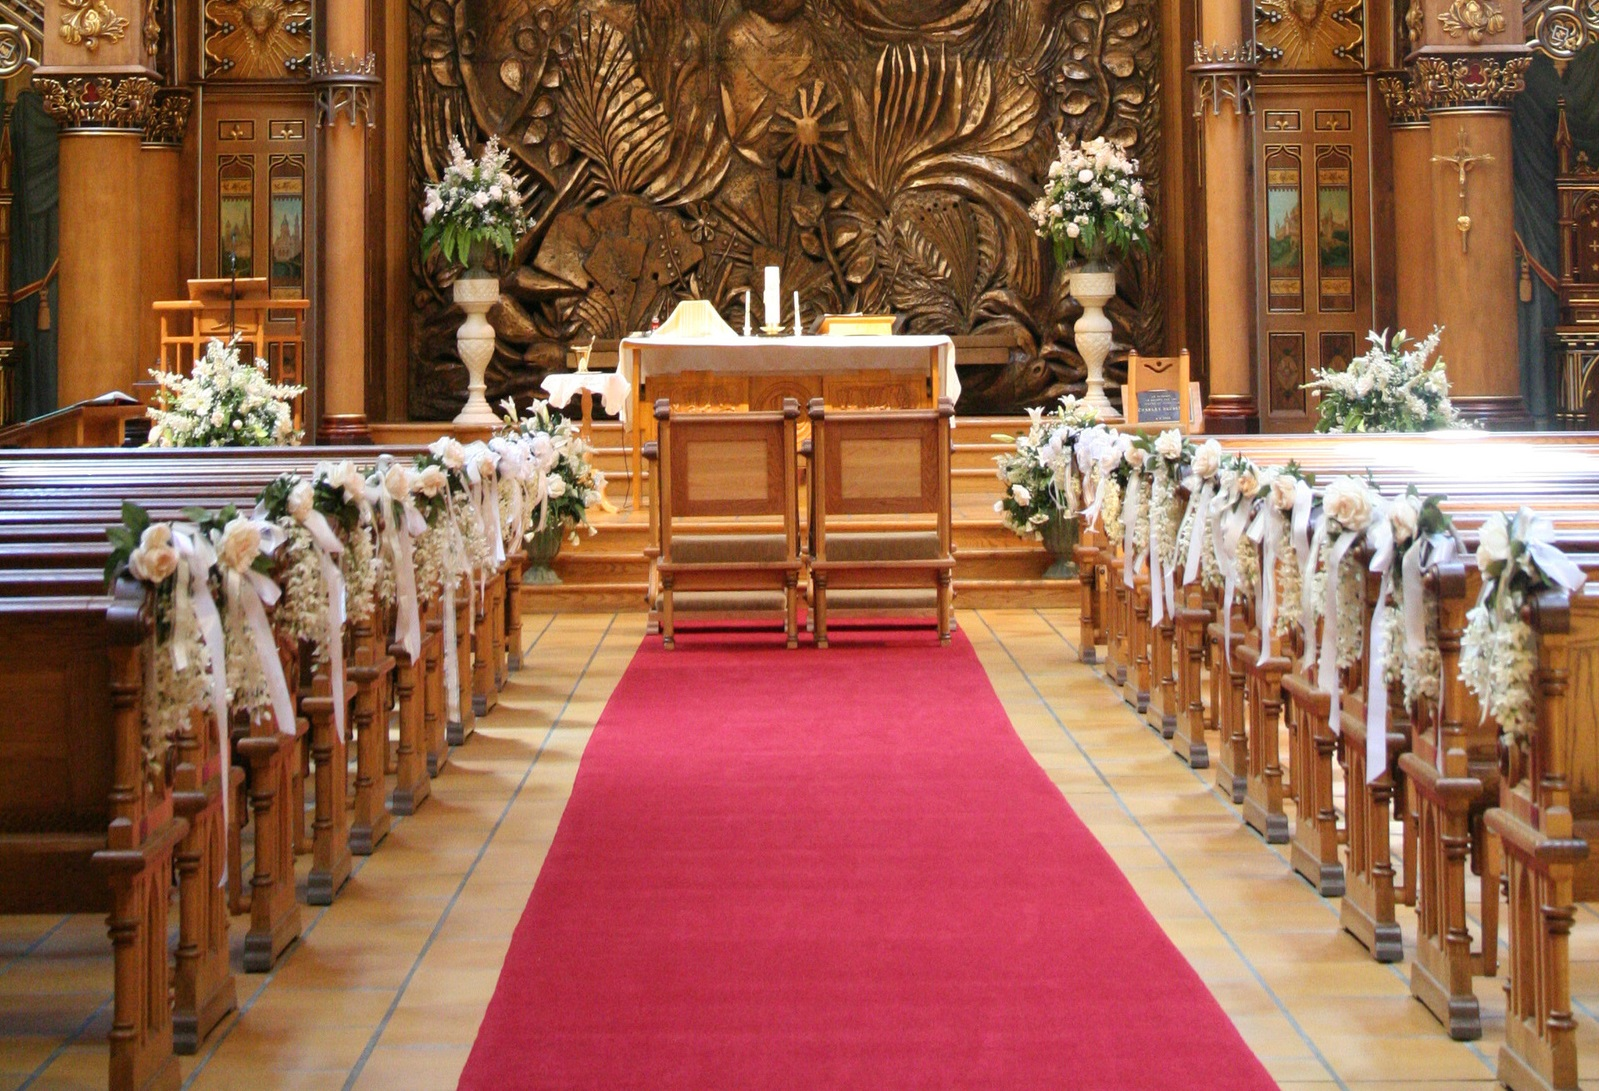 Matrimonio Harry In Chiesa : Decorazioni floreali per un matrimonio in chiesa come